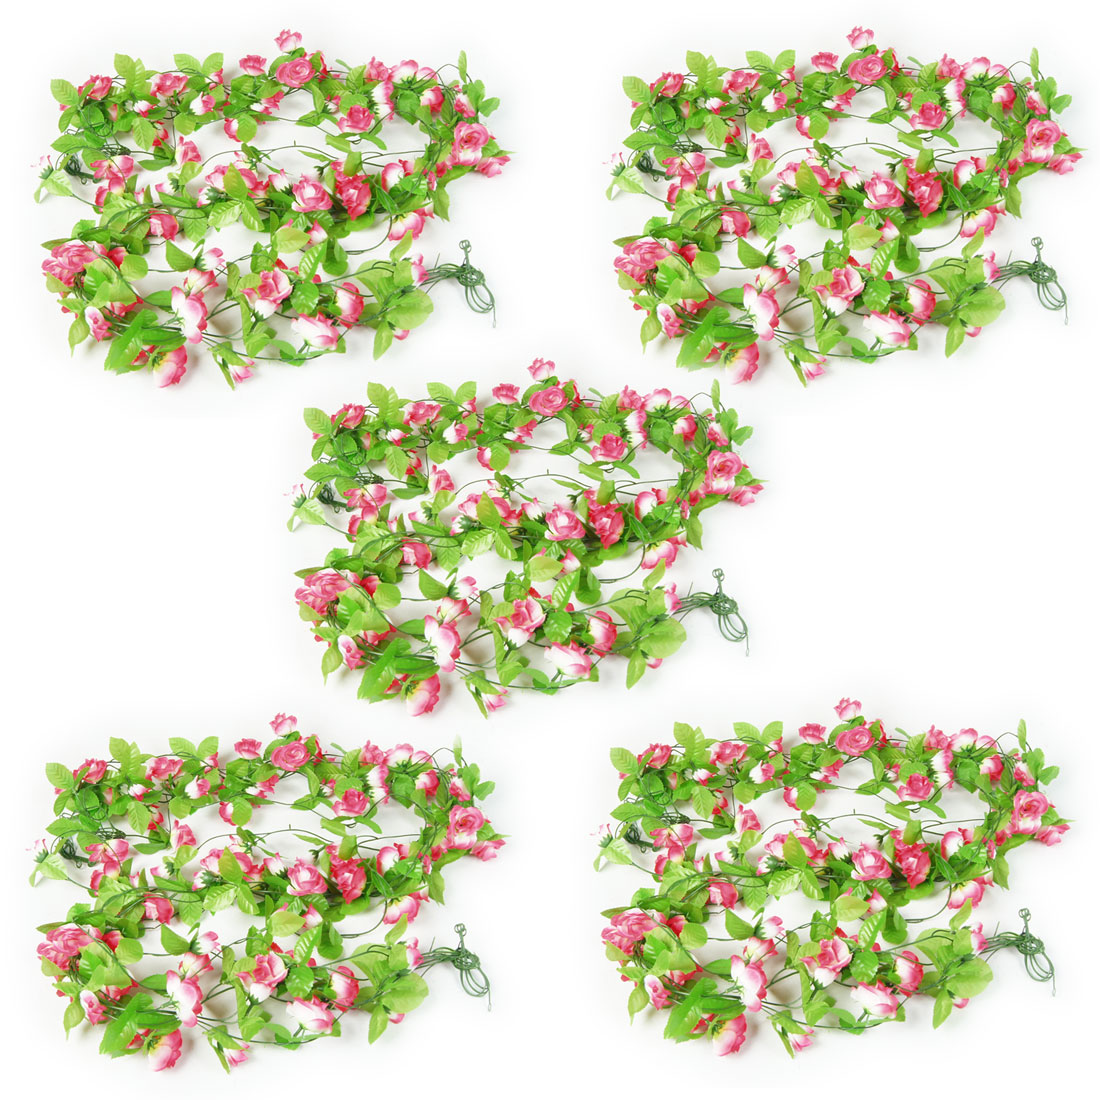 5 Pcs Green Leaf Magenta White Artificial 2.2M 7.2 Ft Fabric Roses Ivy Ornament